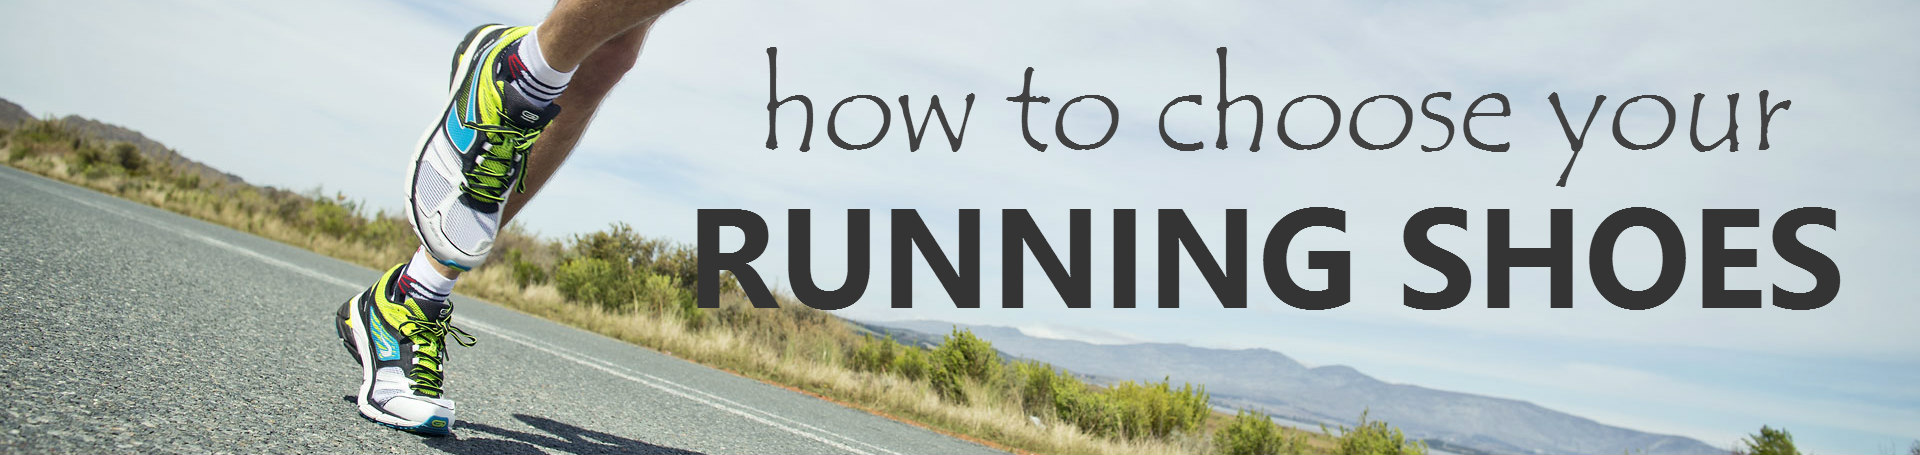 (Video) How to Choose the Best Running Shoes | What to Look for in Athletic Footwear